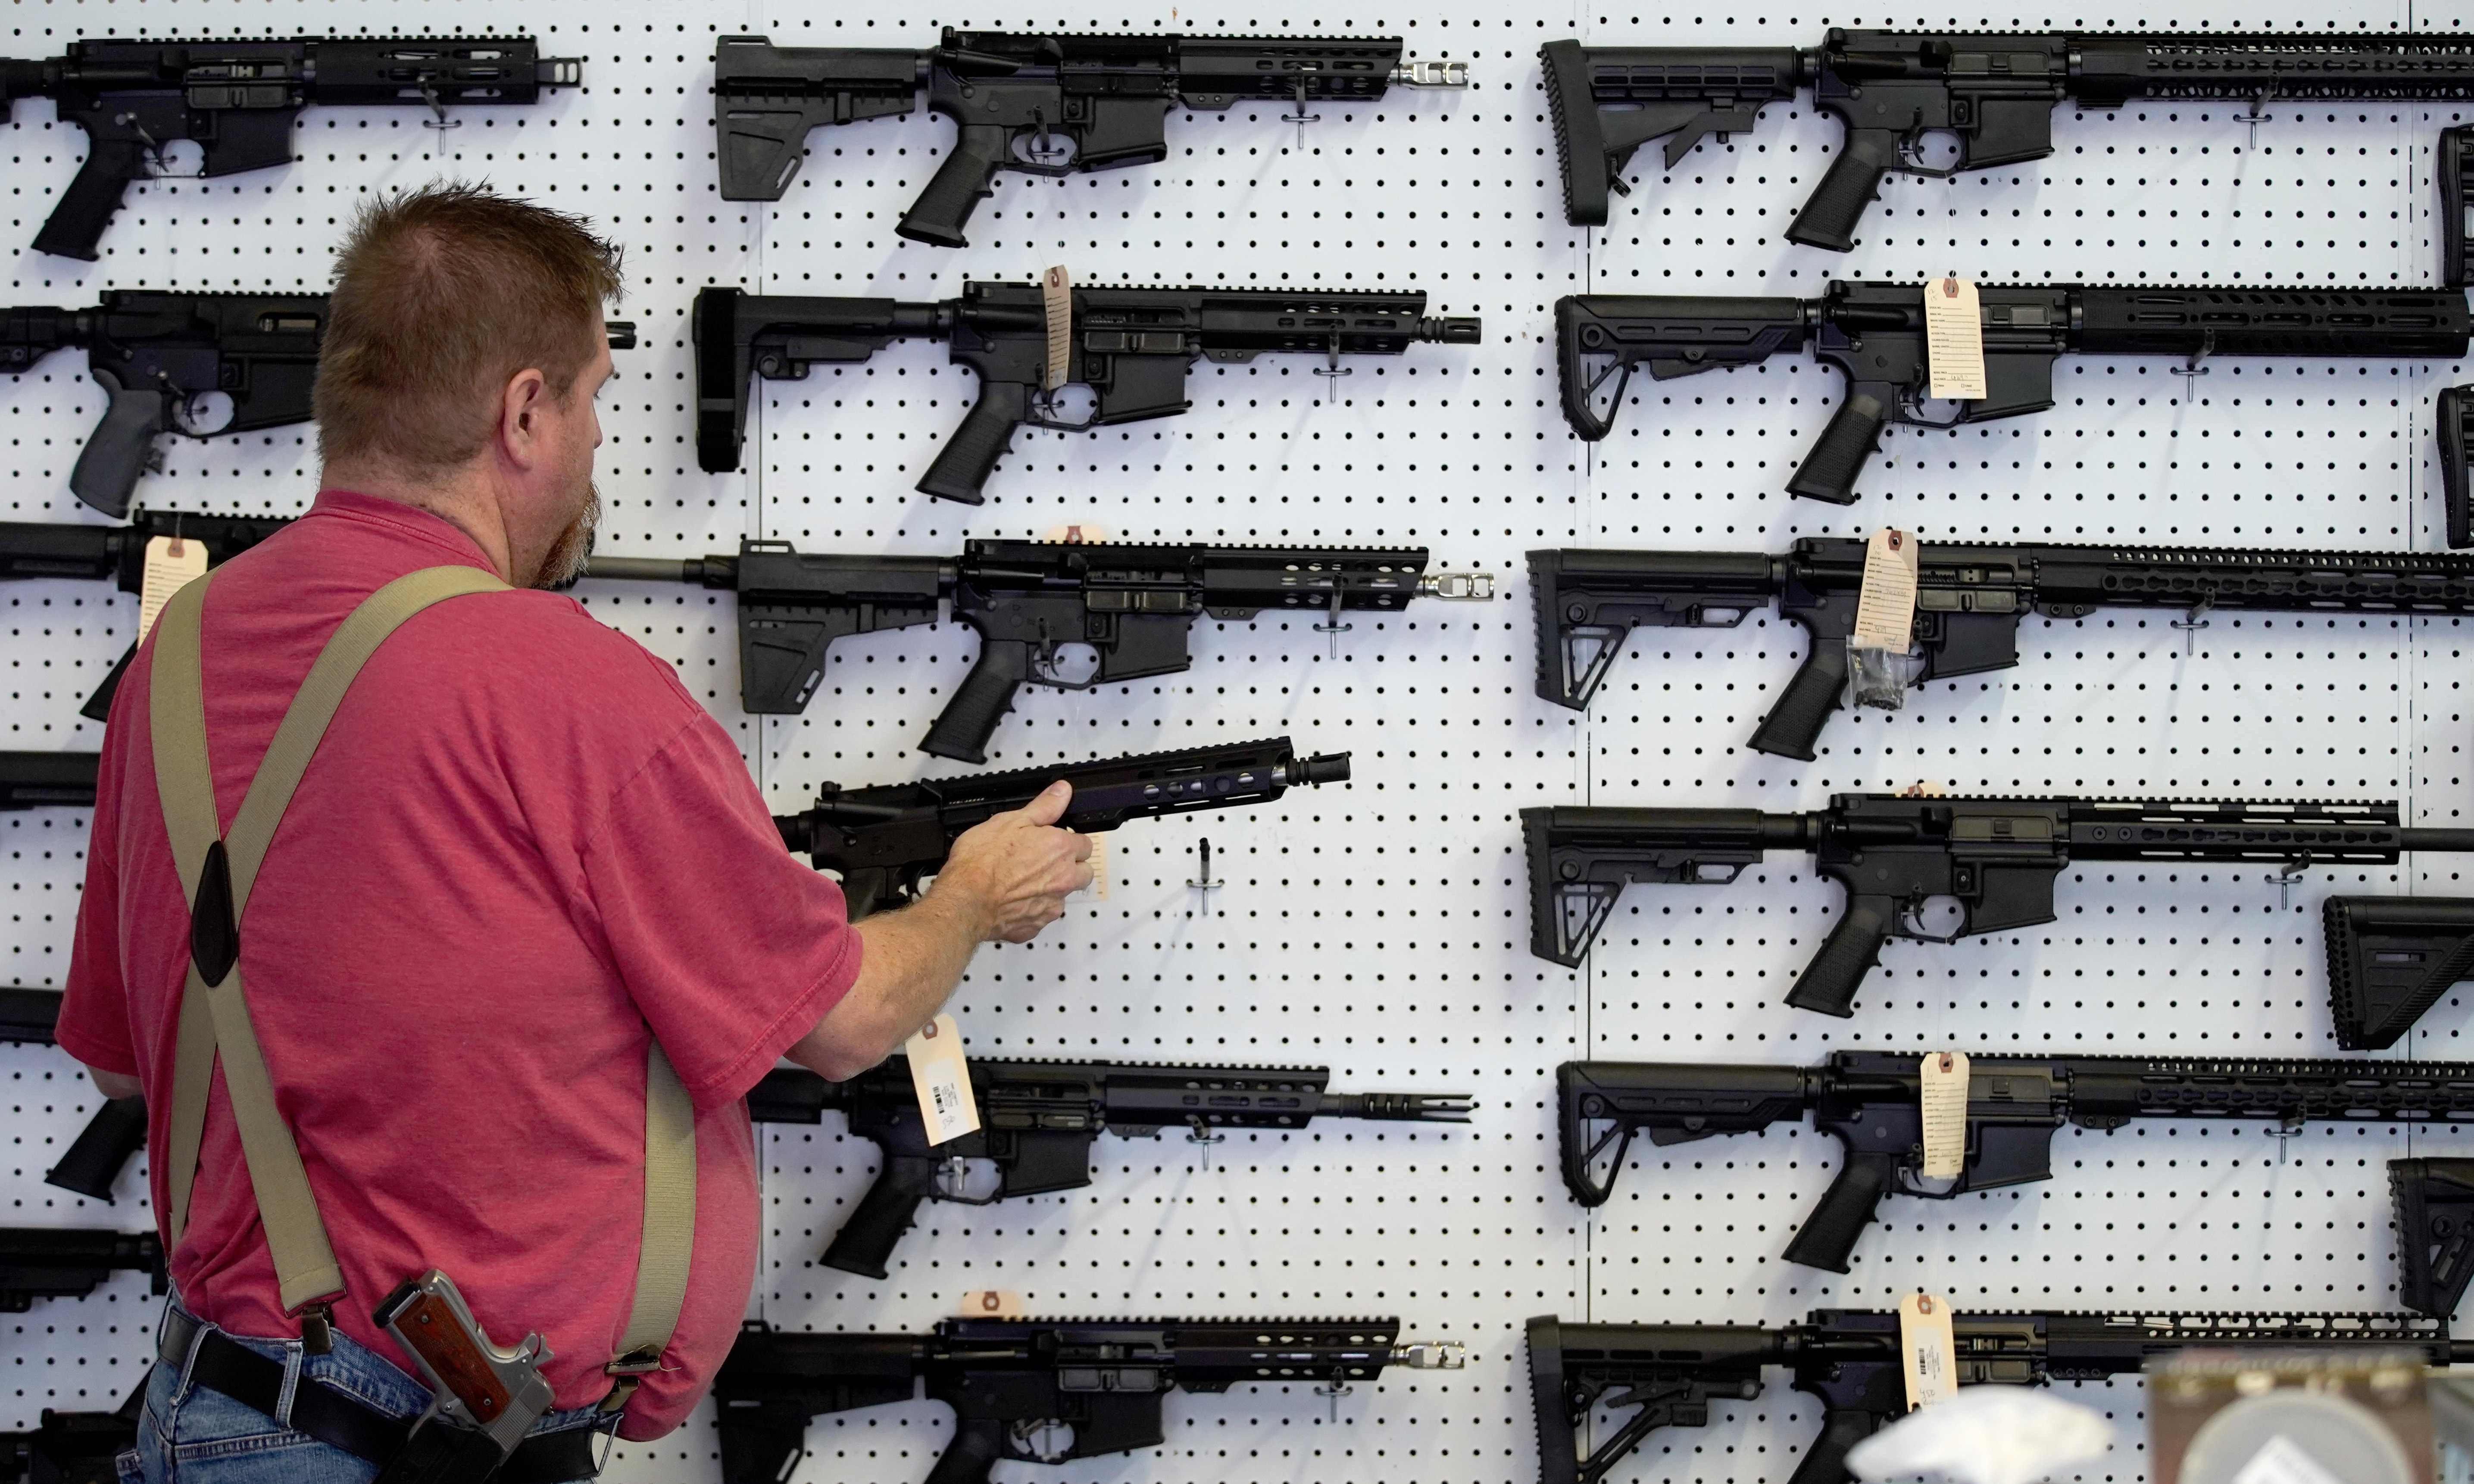 Republican congressional candidate touts AR-15s to fight 'looting hordes from Atlanta'